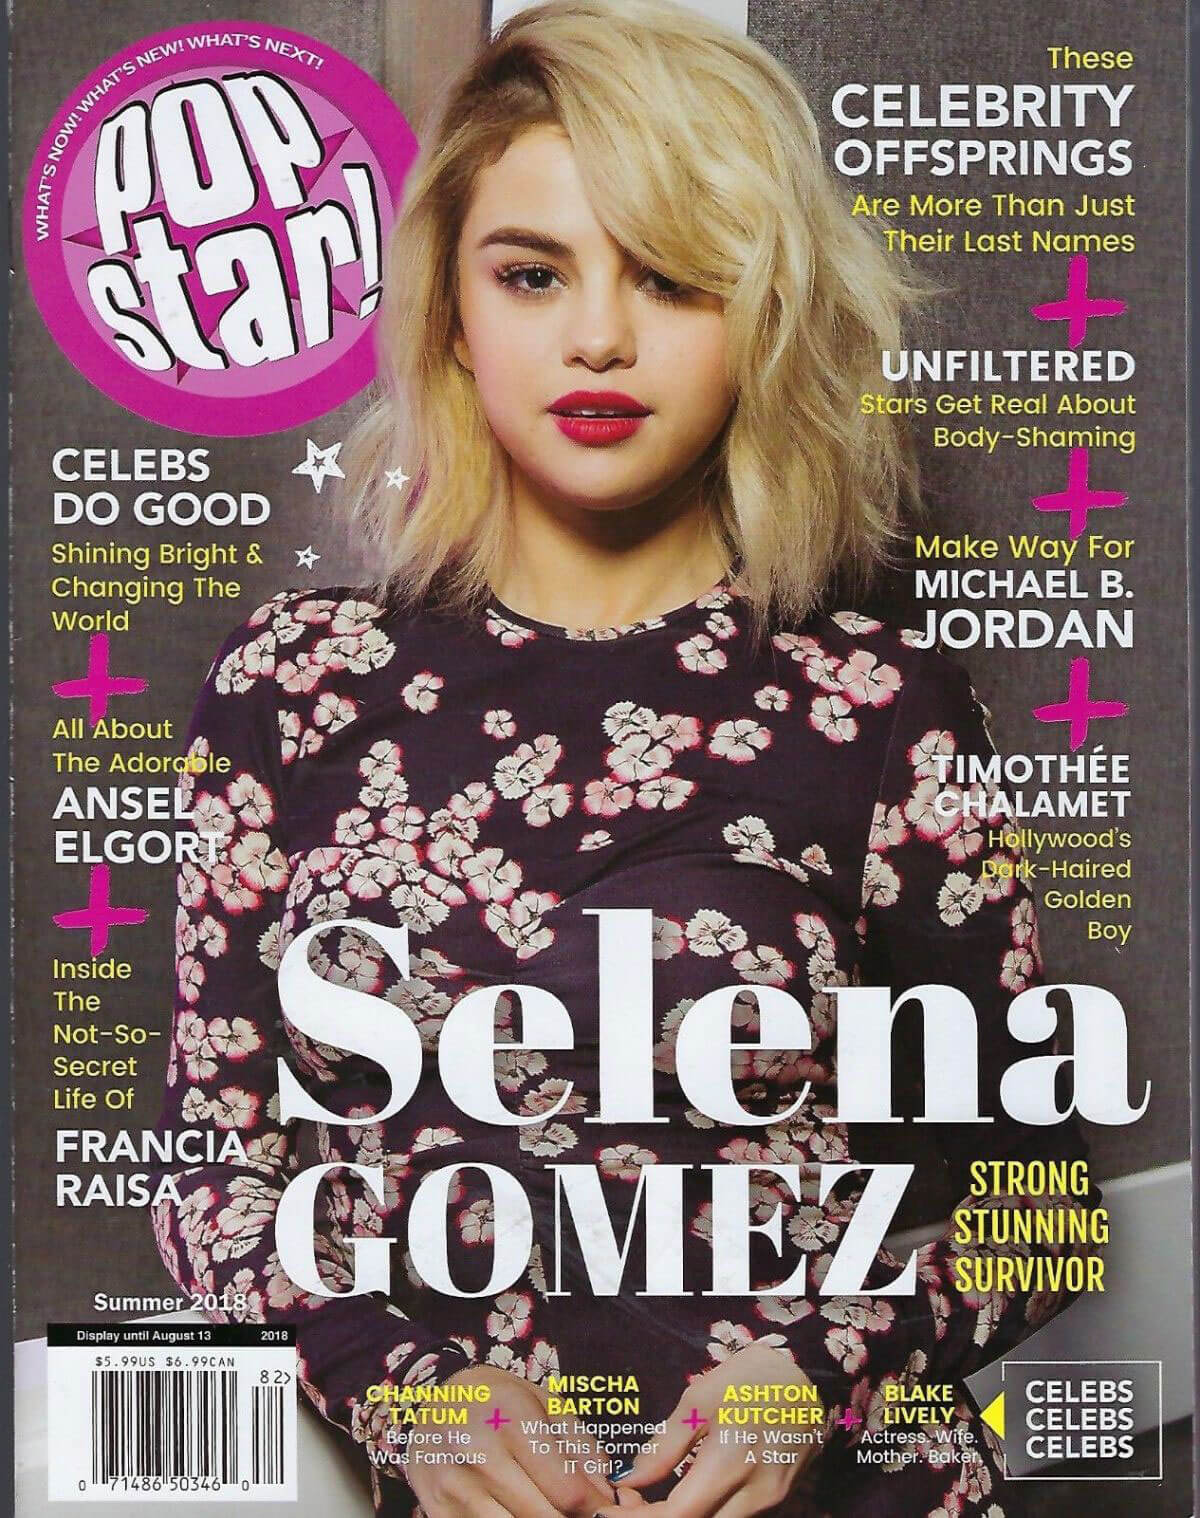 Selena Gomez Stills on the Cover of Pop Star! Magazine, Summer 2018 Issue 1